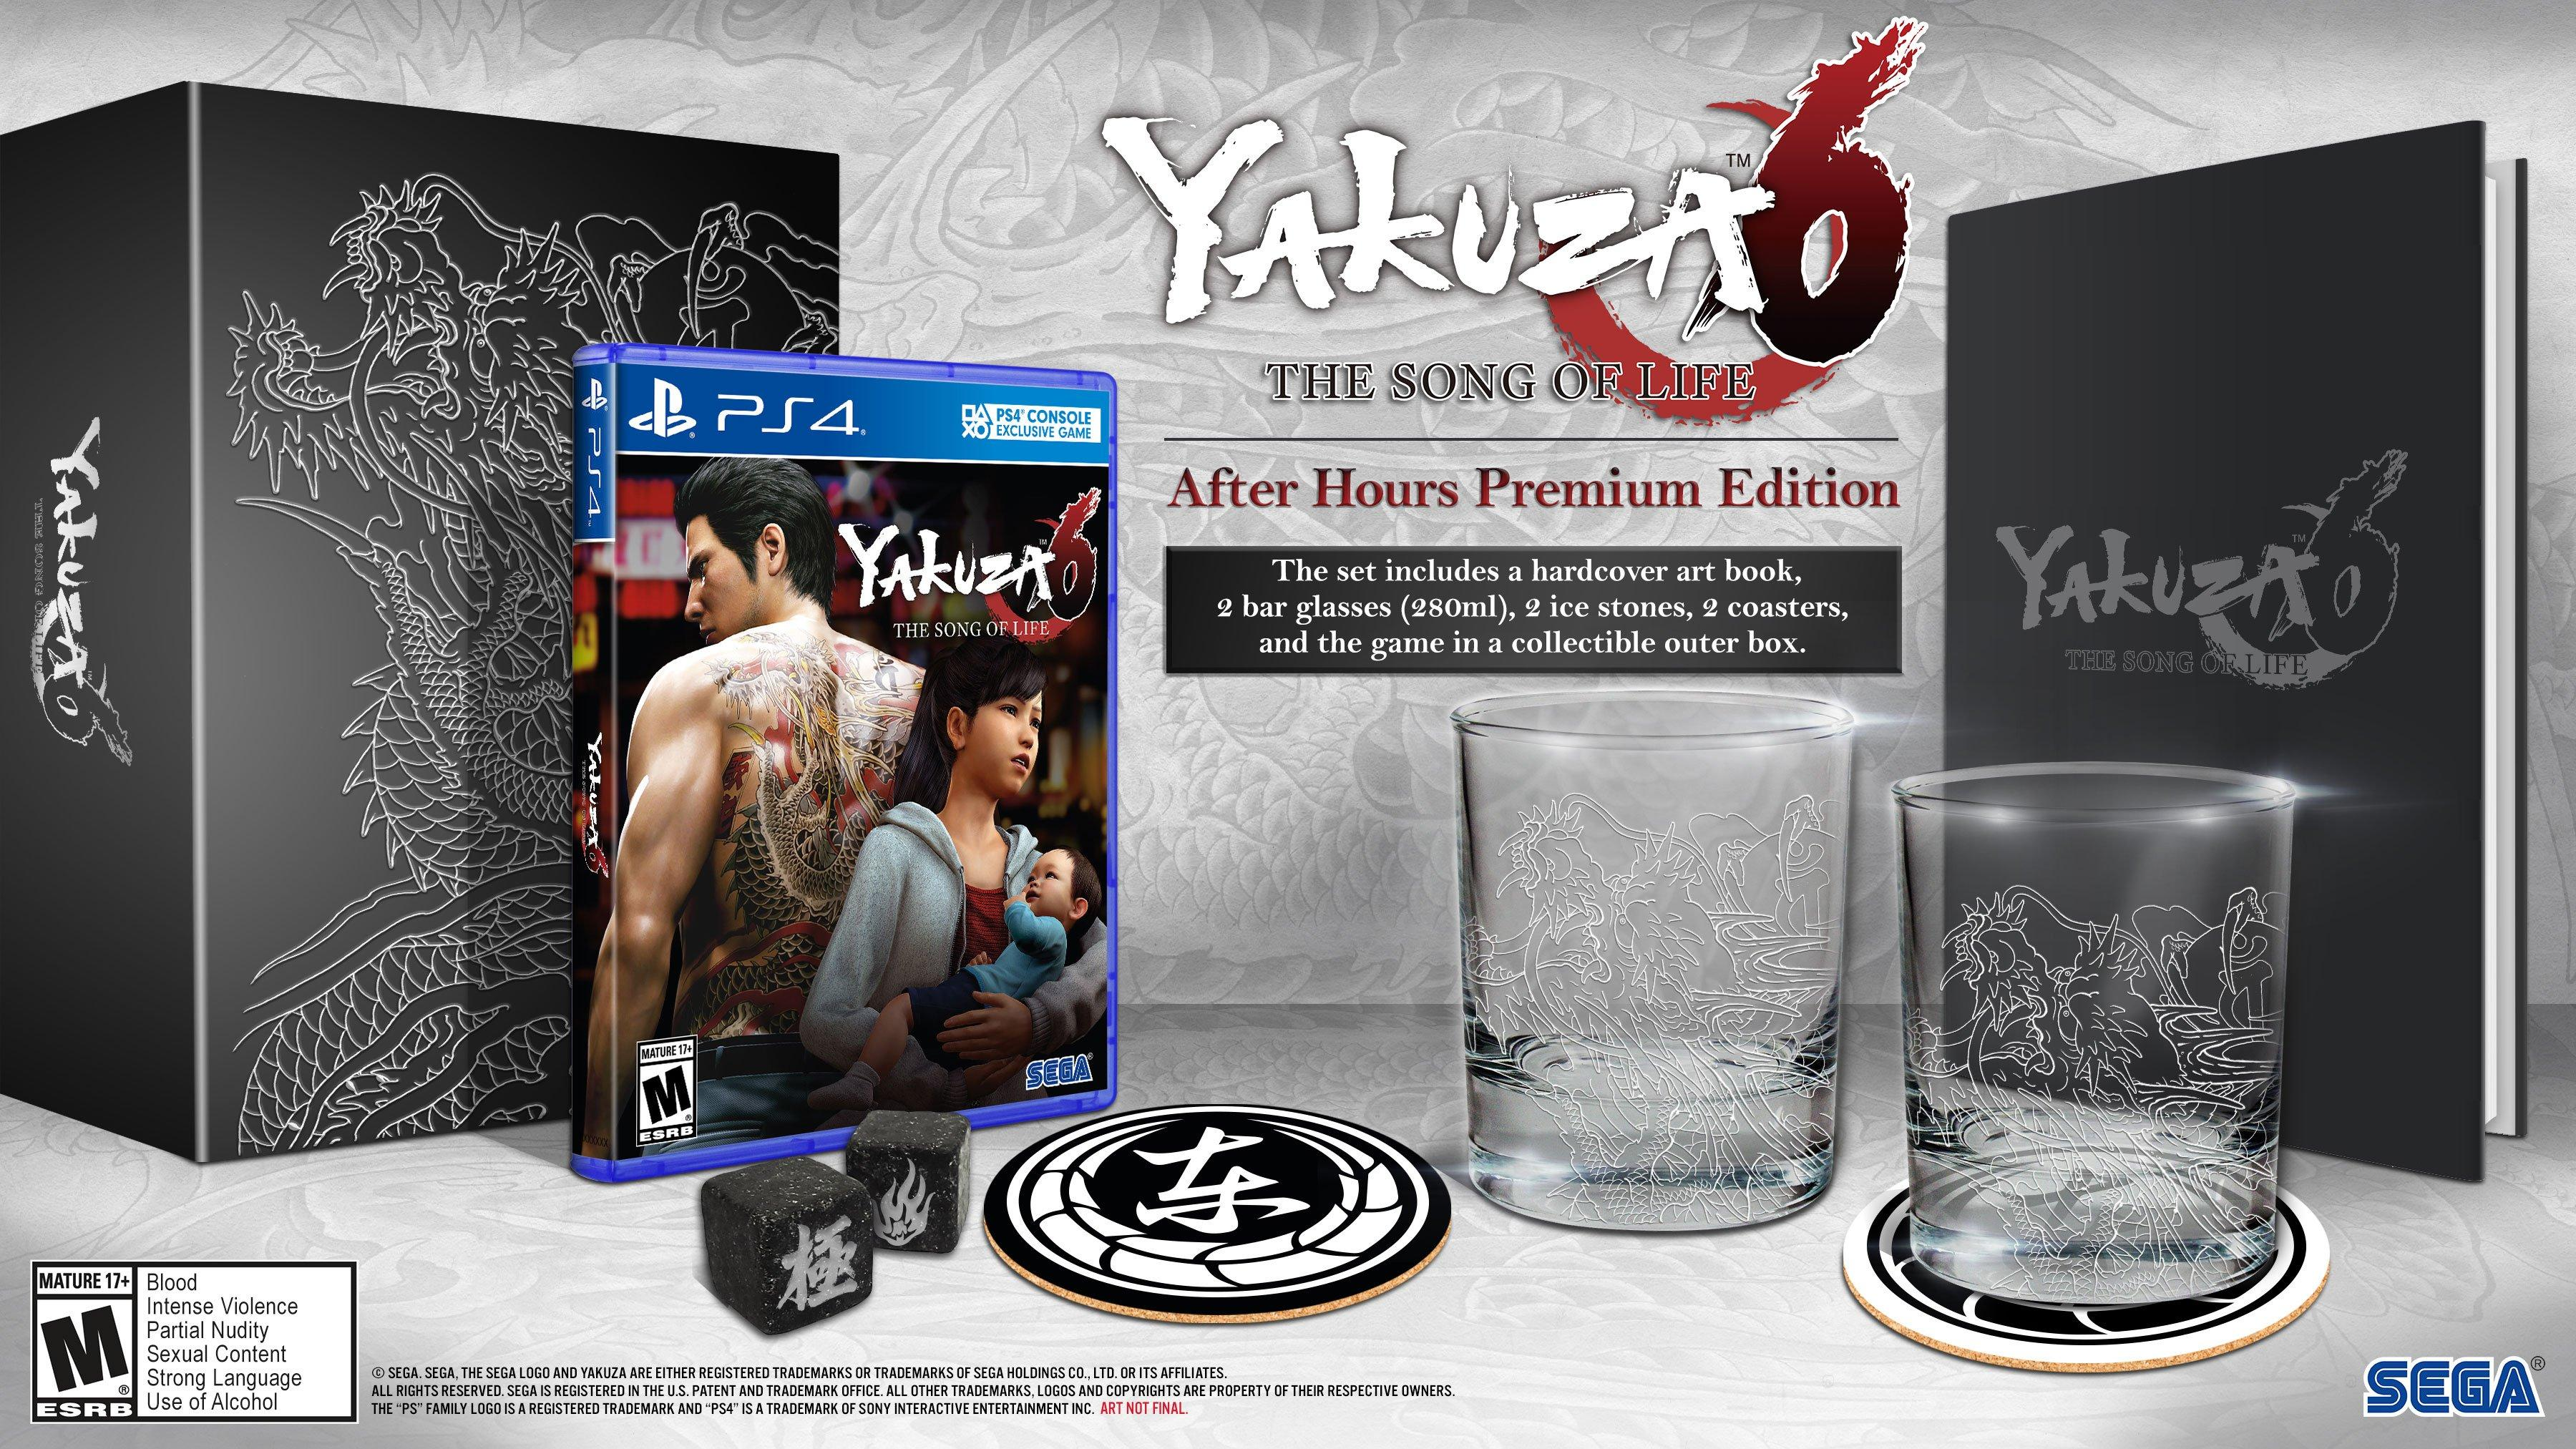 YMMV: Yakuza 6 The Song of Life Premium Edition $50 at GameStop In-Store Only